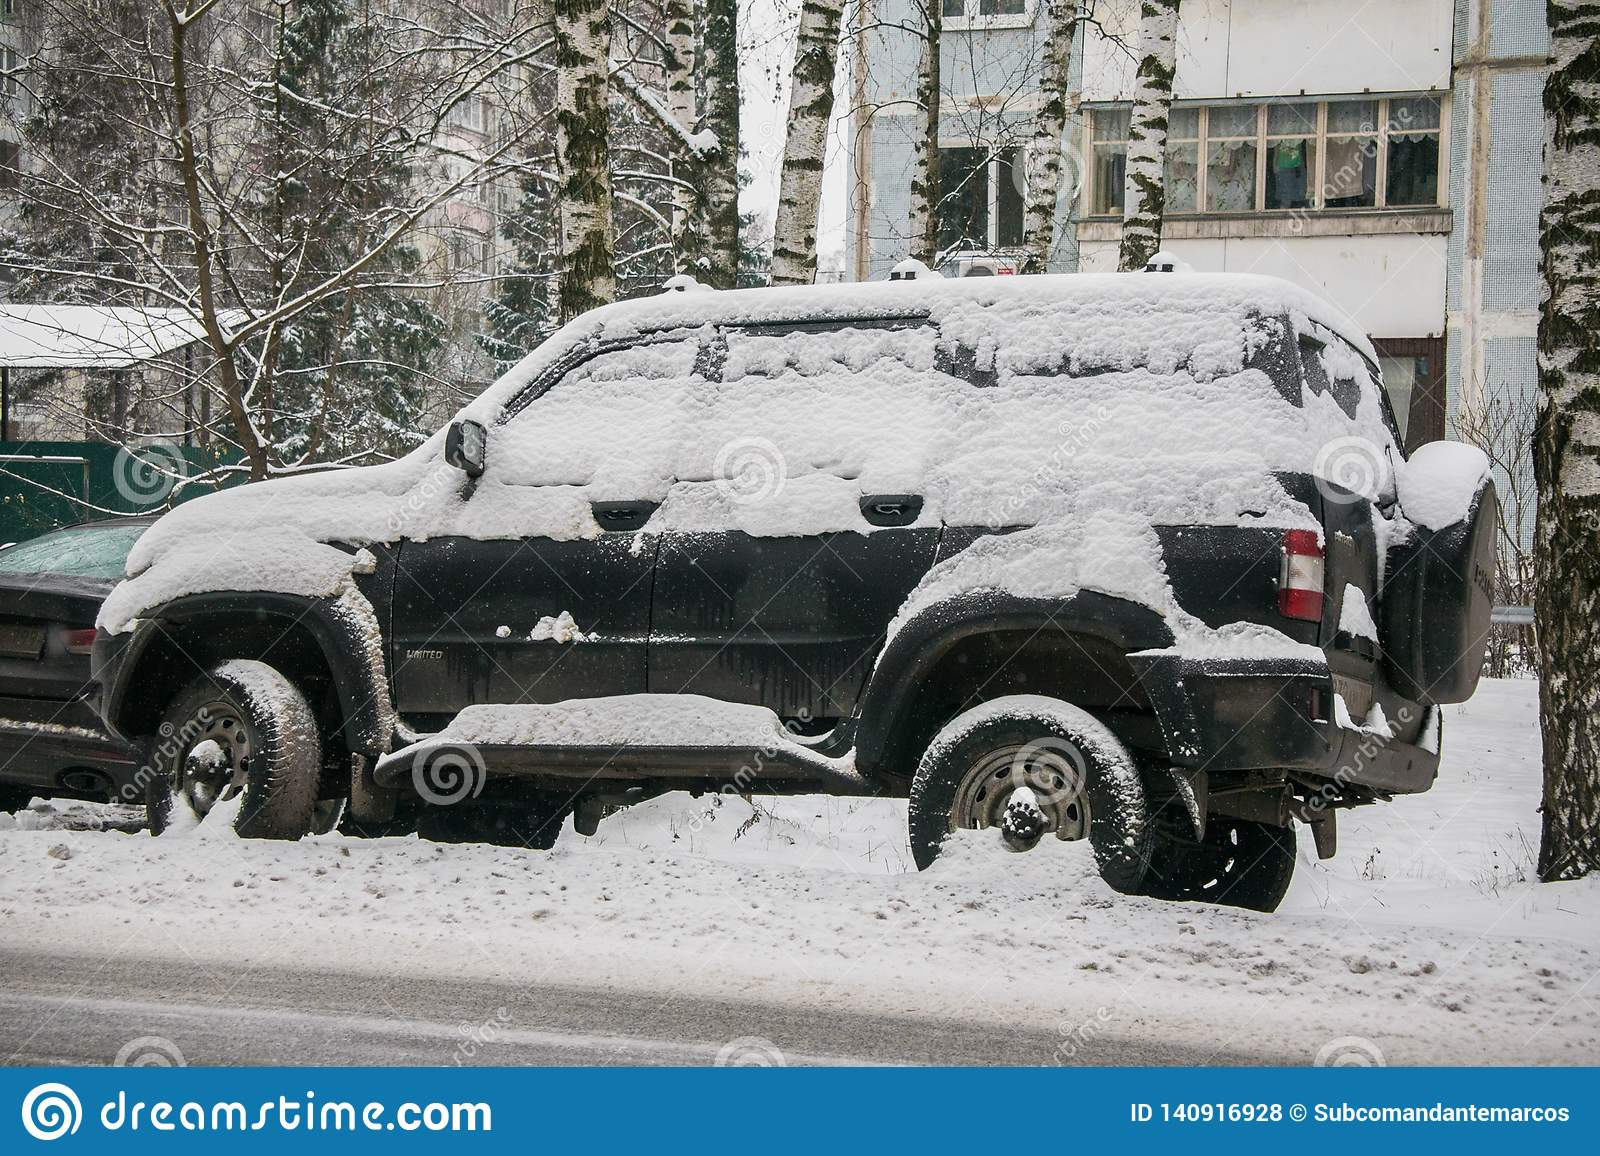 The car, covered with thick layer of snow, in the yard of residential house in provilcial town.